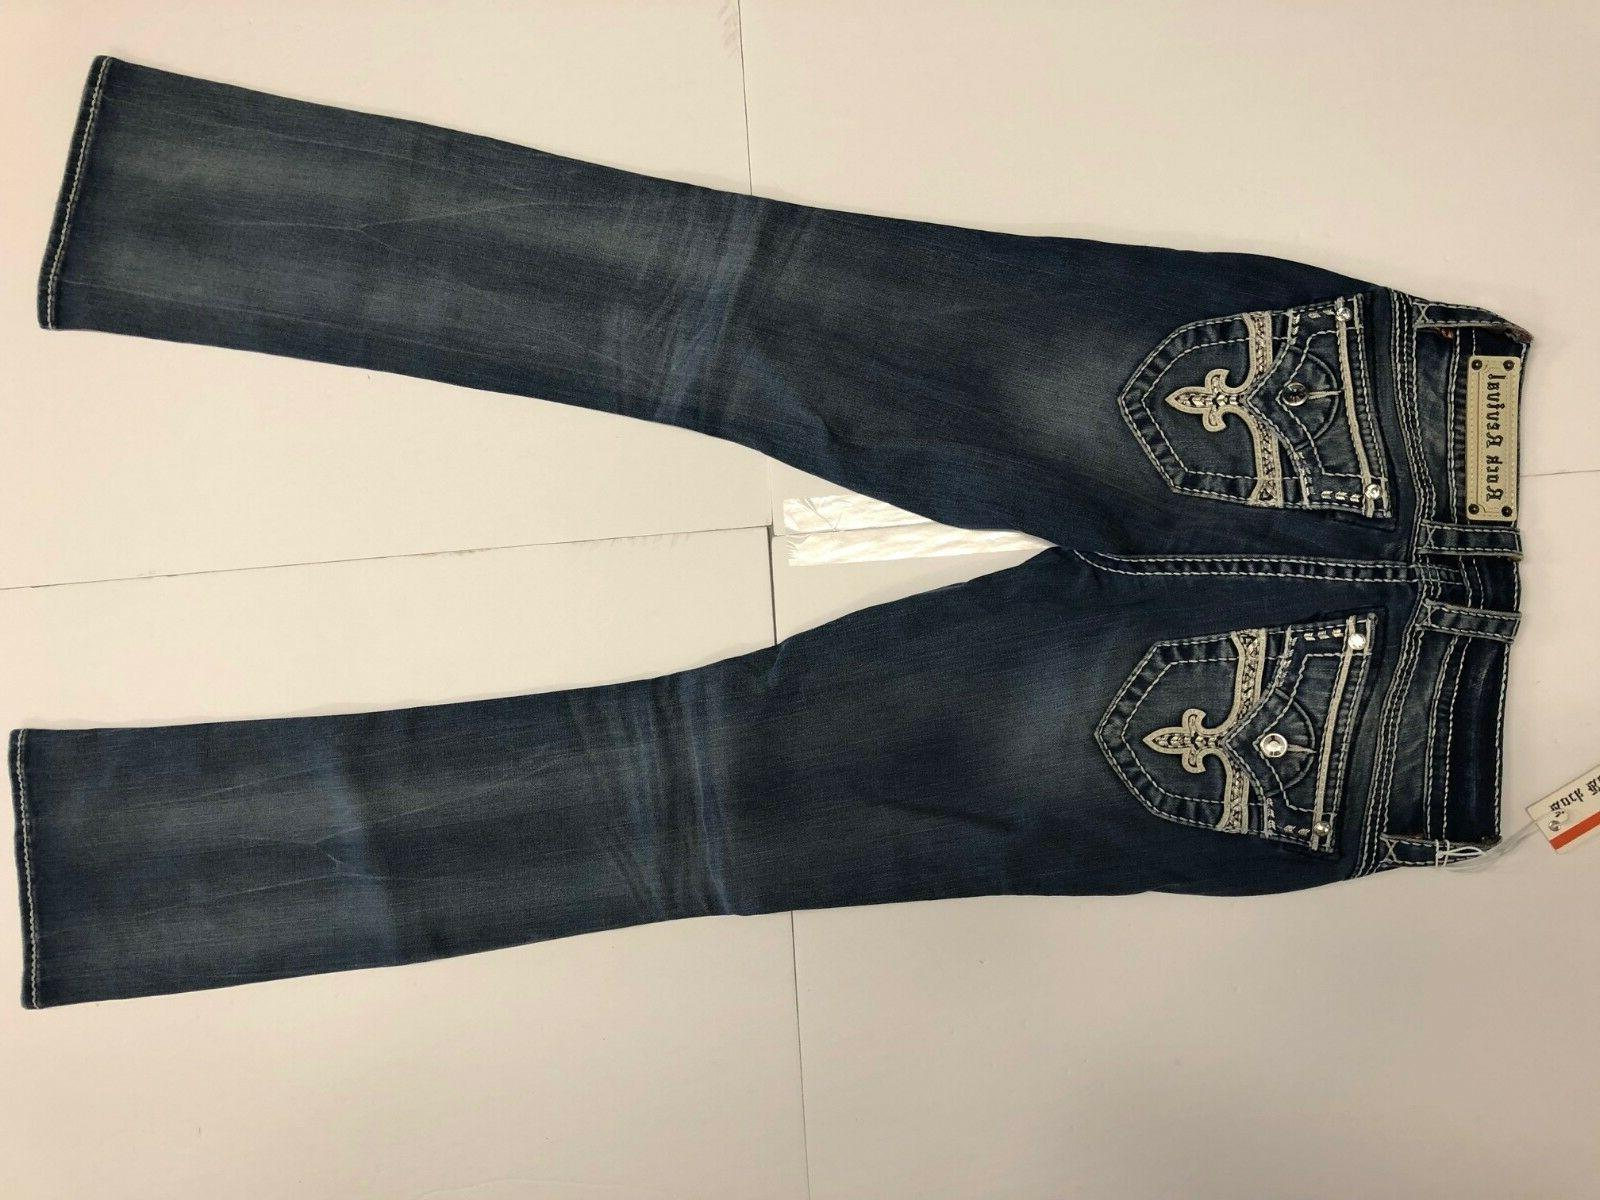 NWT Women ROCK REVIVAL JEANS LUZ B400 225$ BLUE CRYSTALS SIZE 26